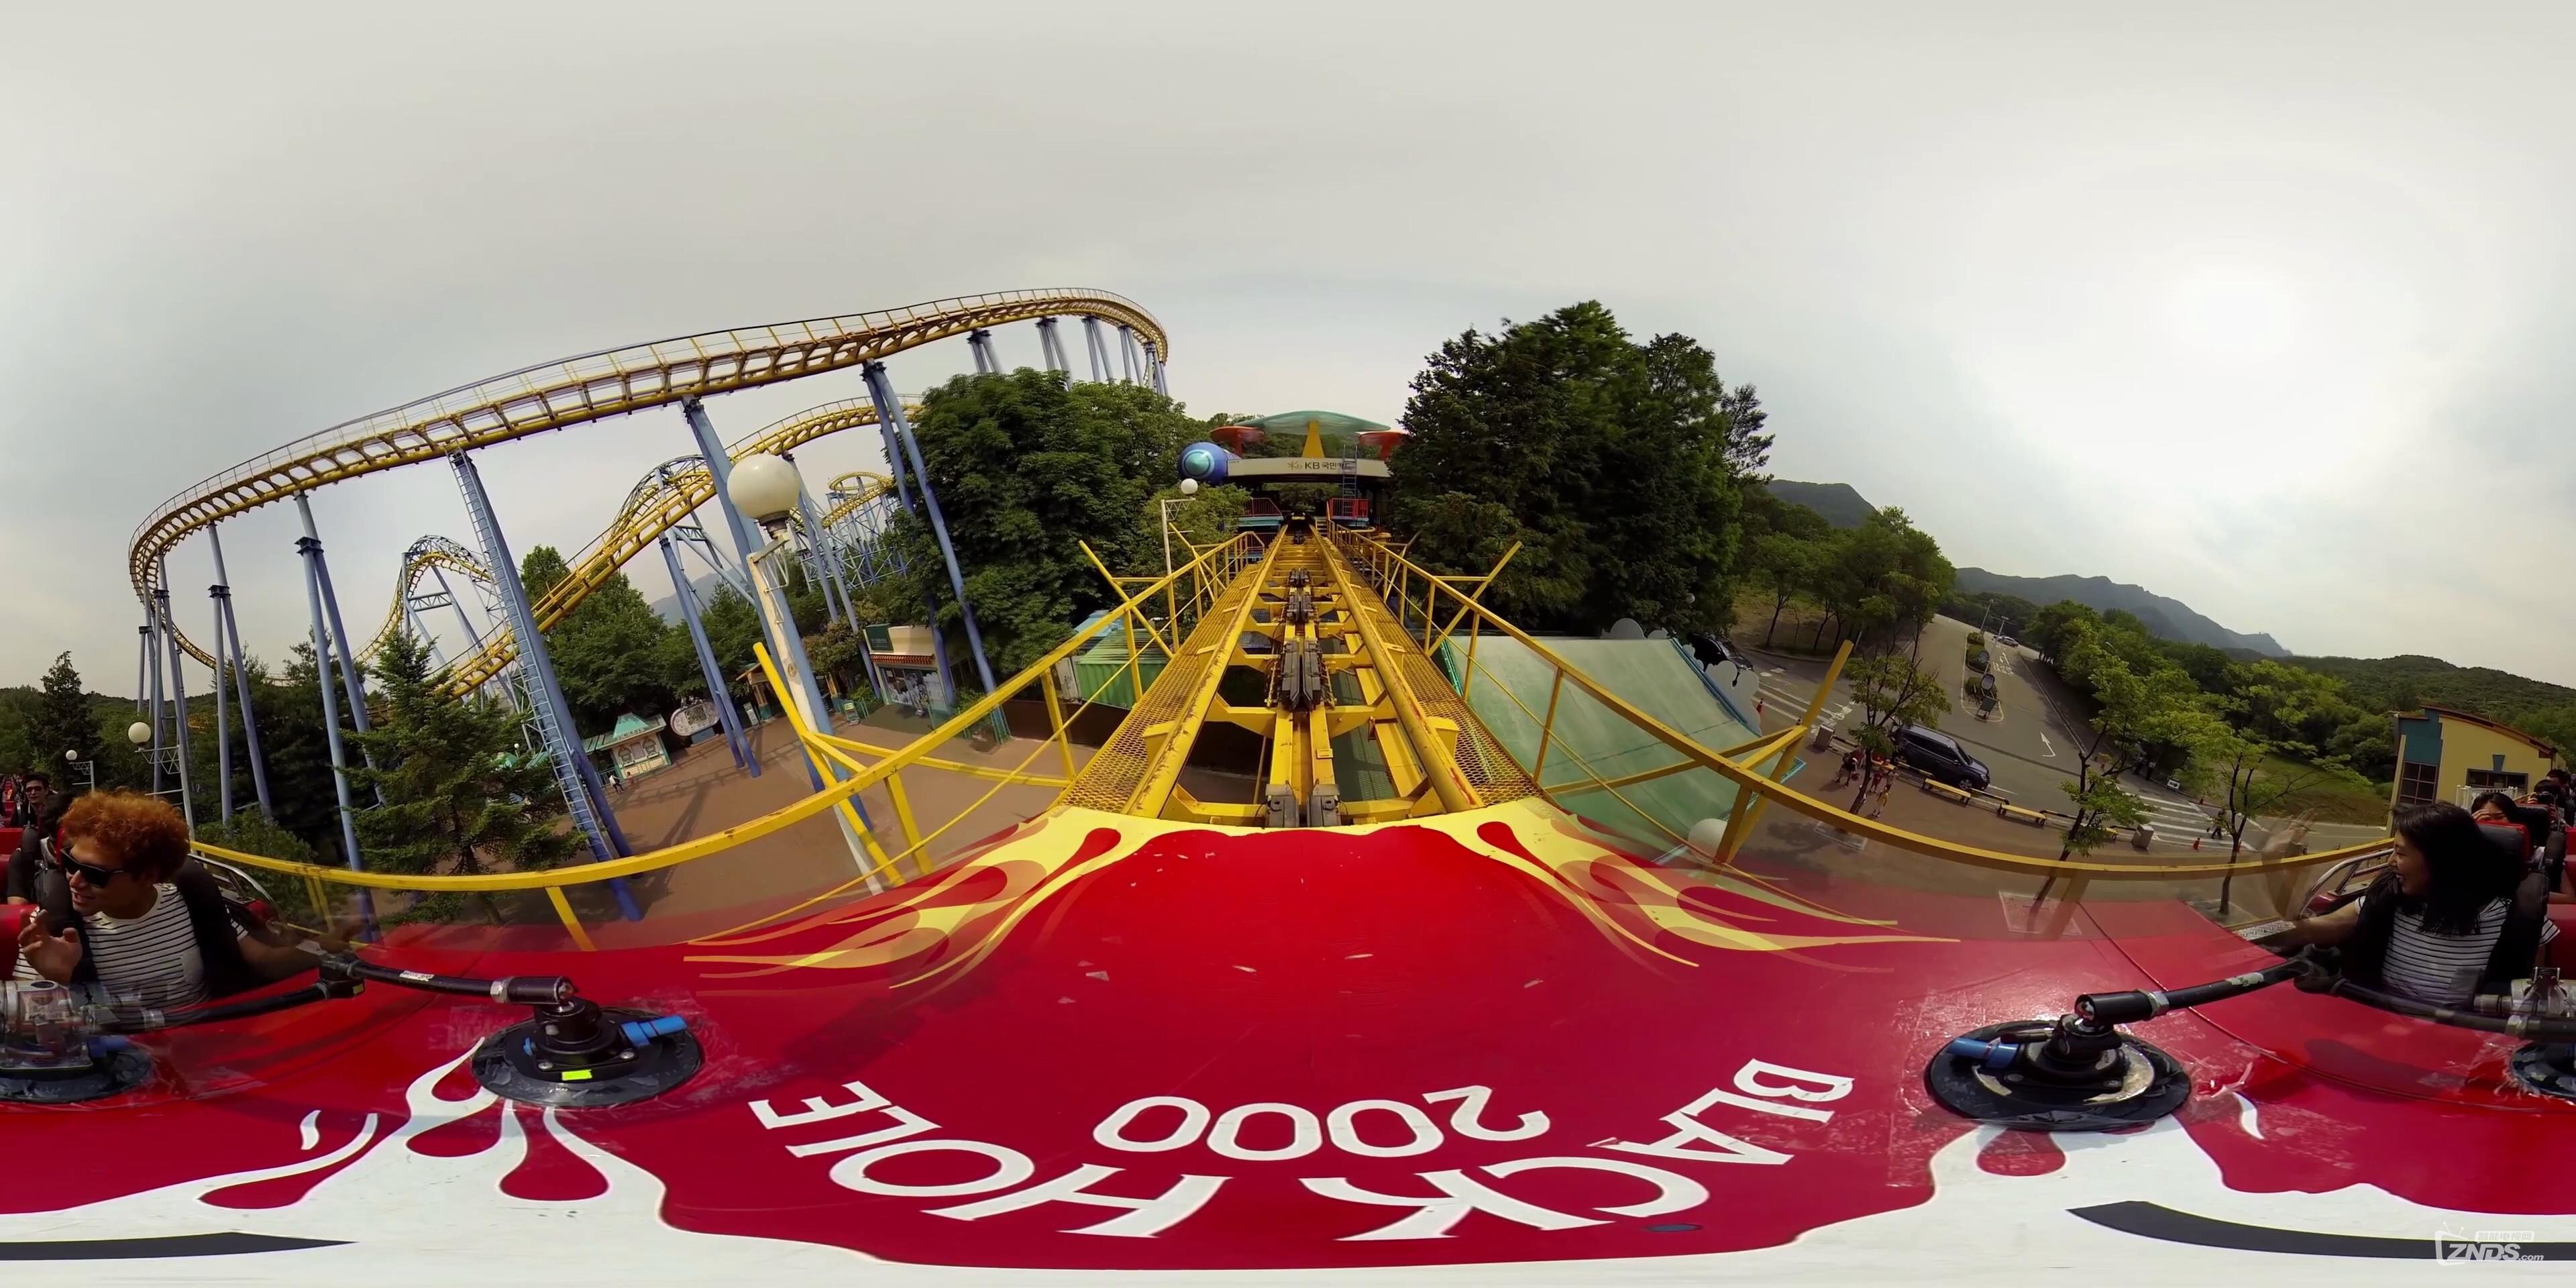 [Extreme] 360° RollerCoaster at Seoul Grand Park__20160716203938.JPG